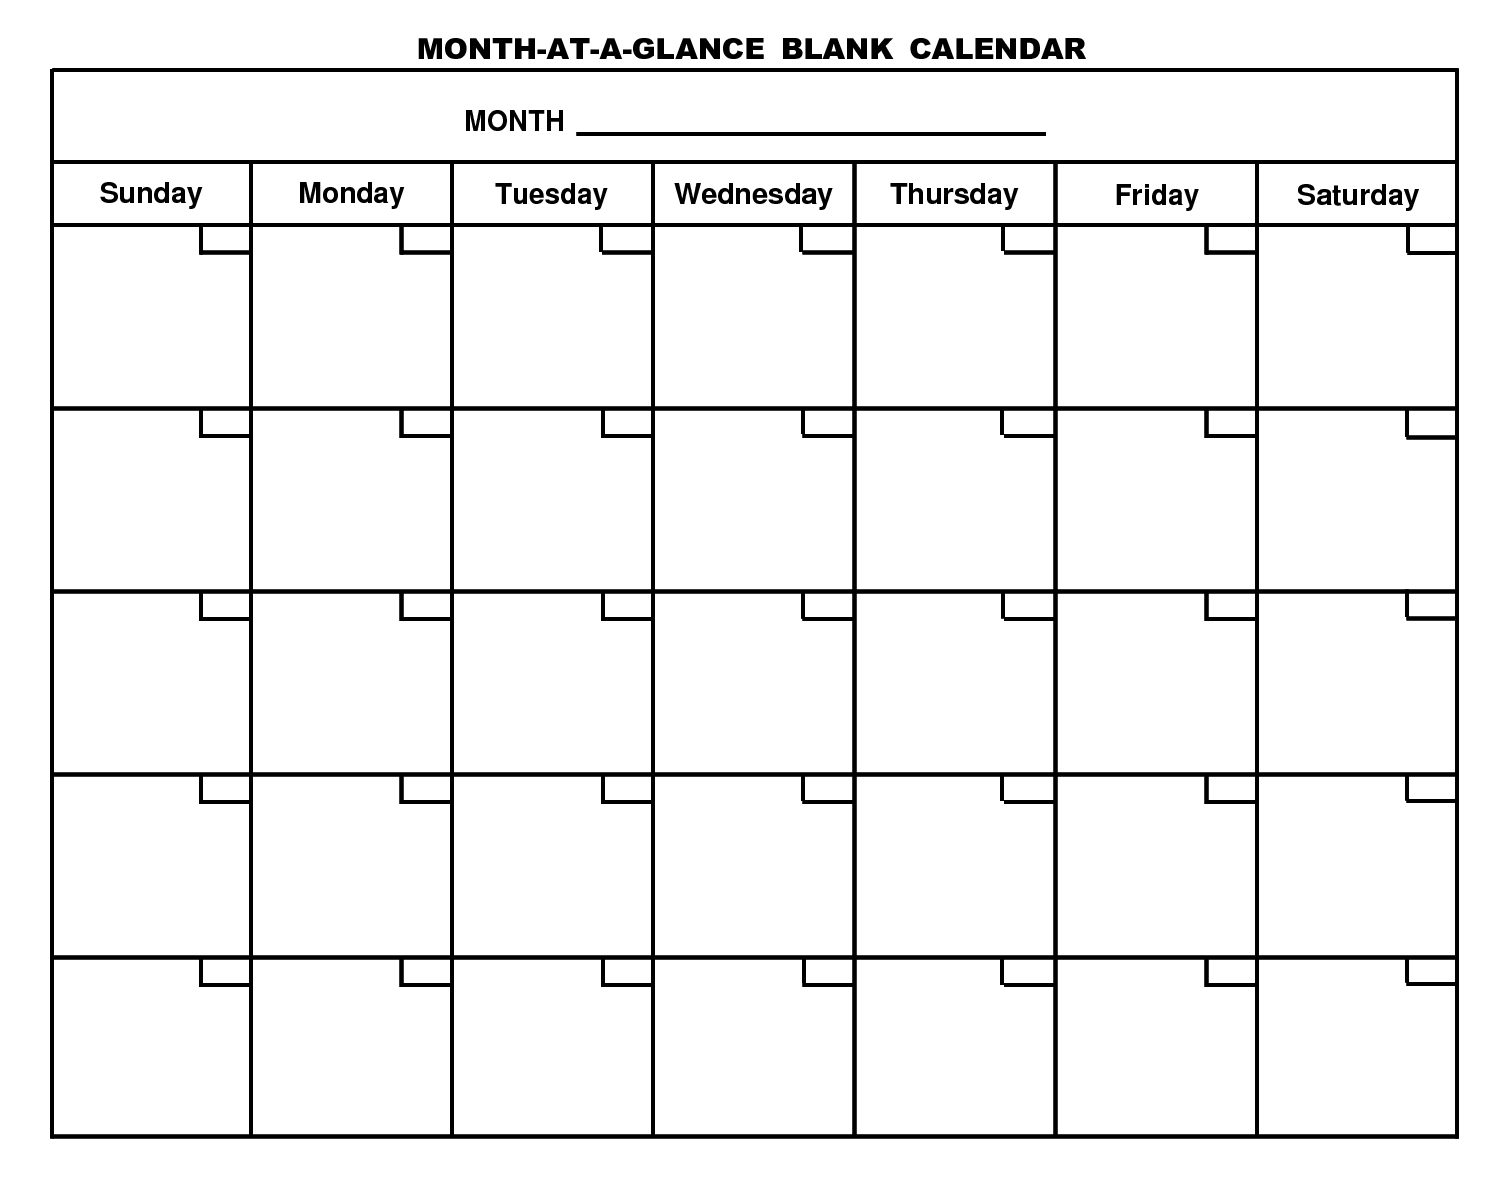 Calendar Template Year At A Glance 2015 | Calendar Of